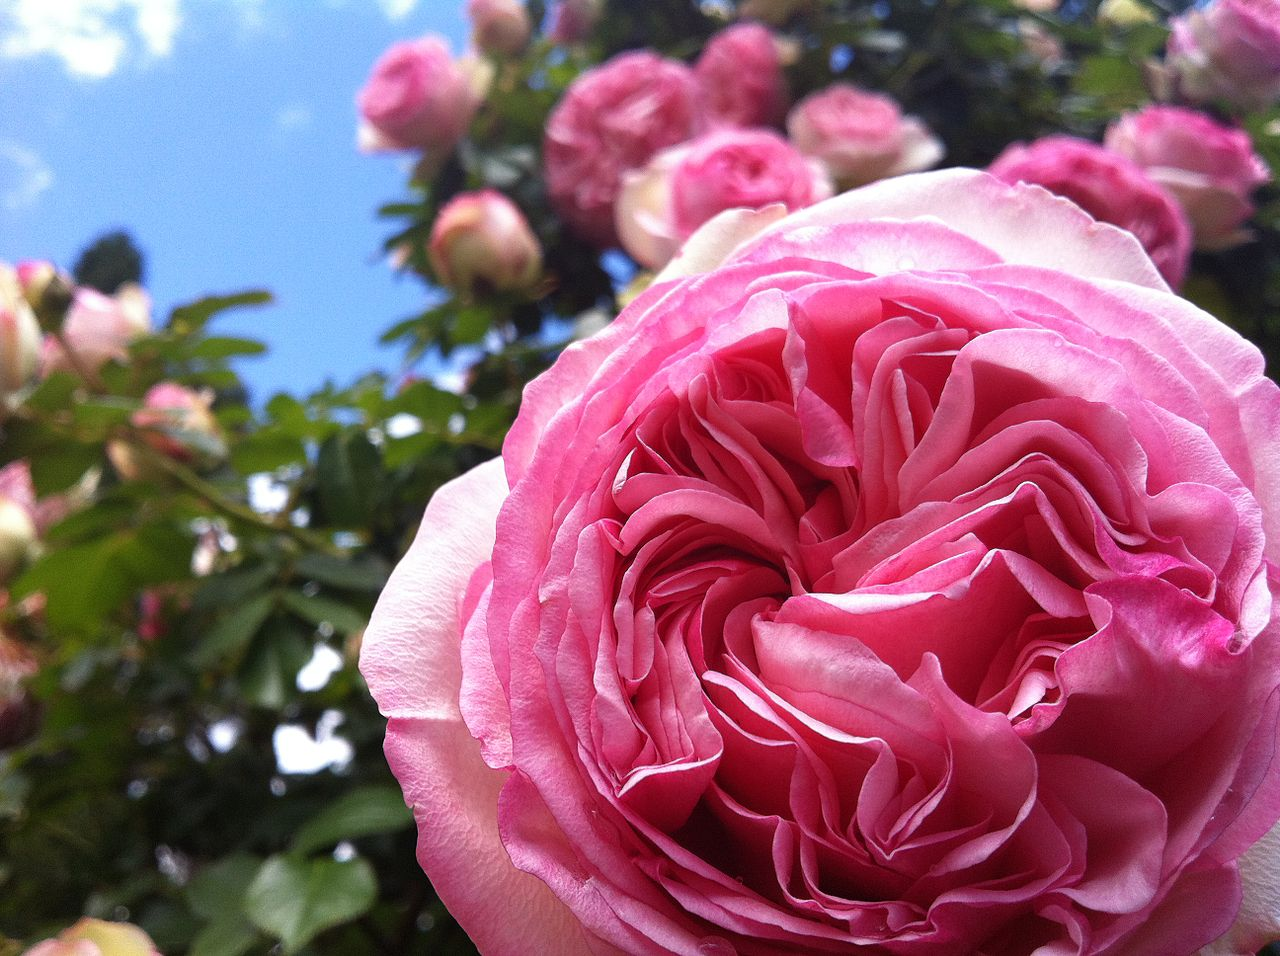 Roses In Garden: File:Pink Roses At The International Rose Test Garden In